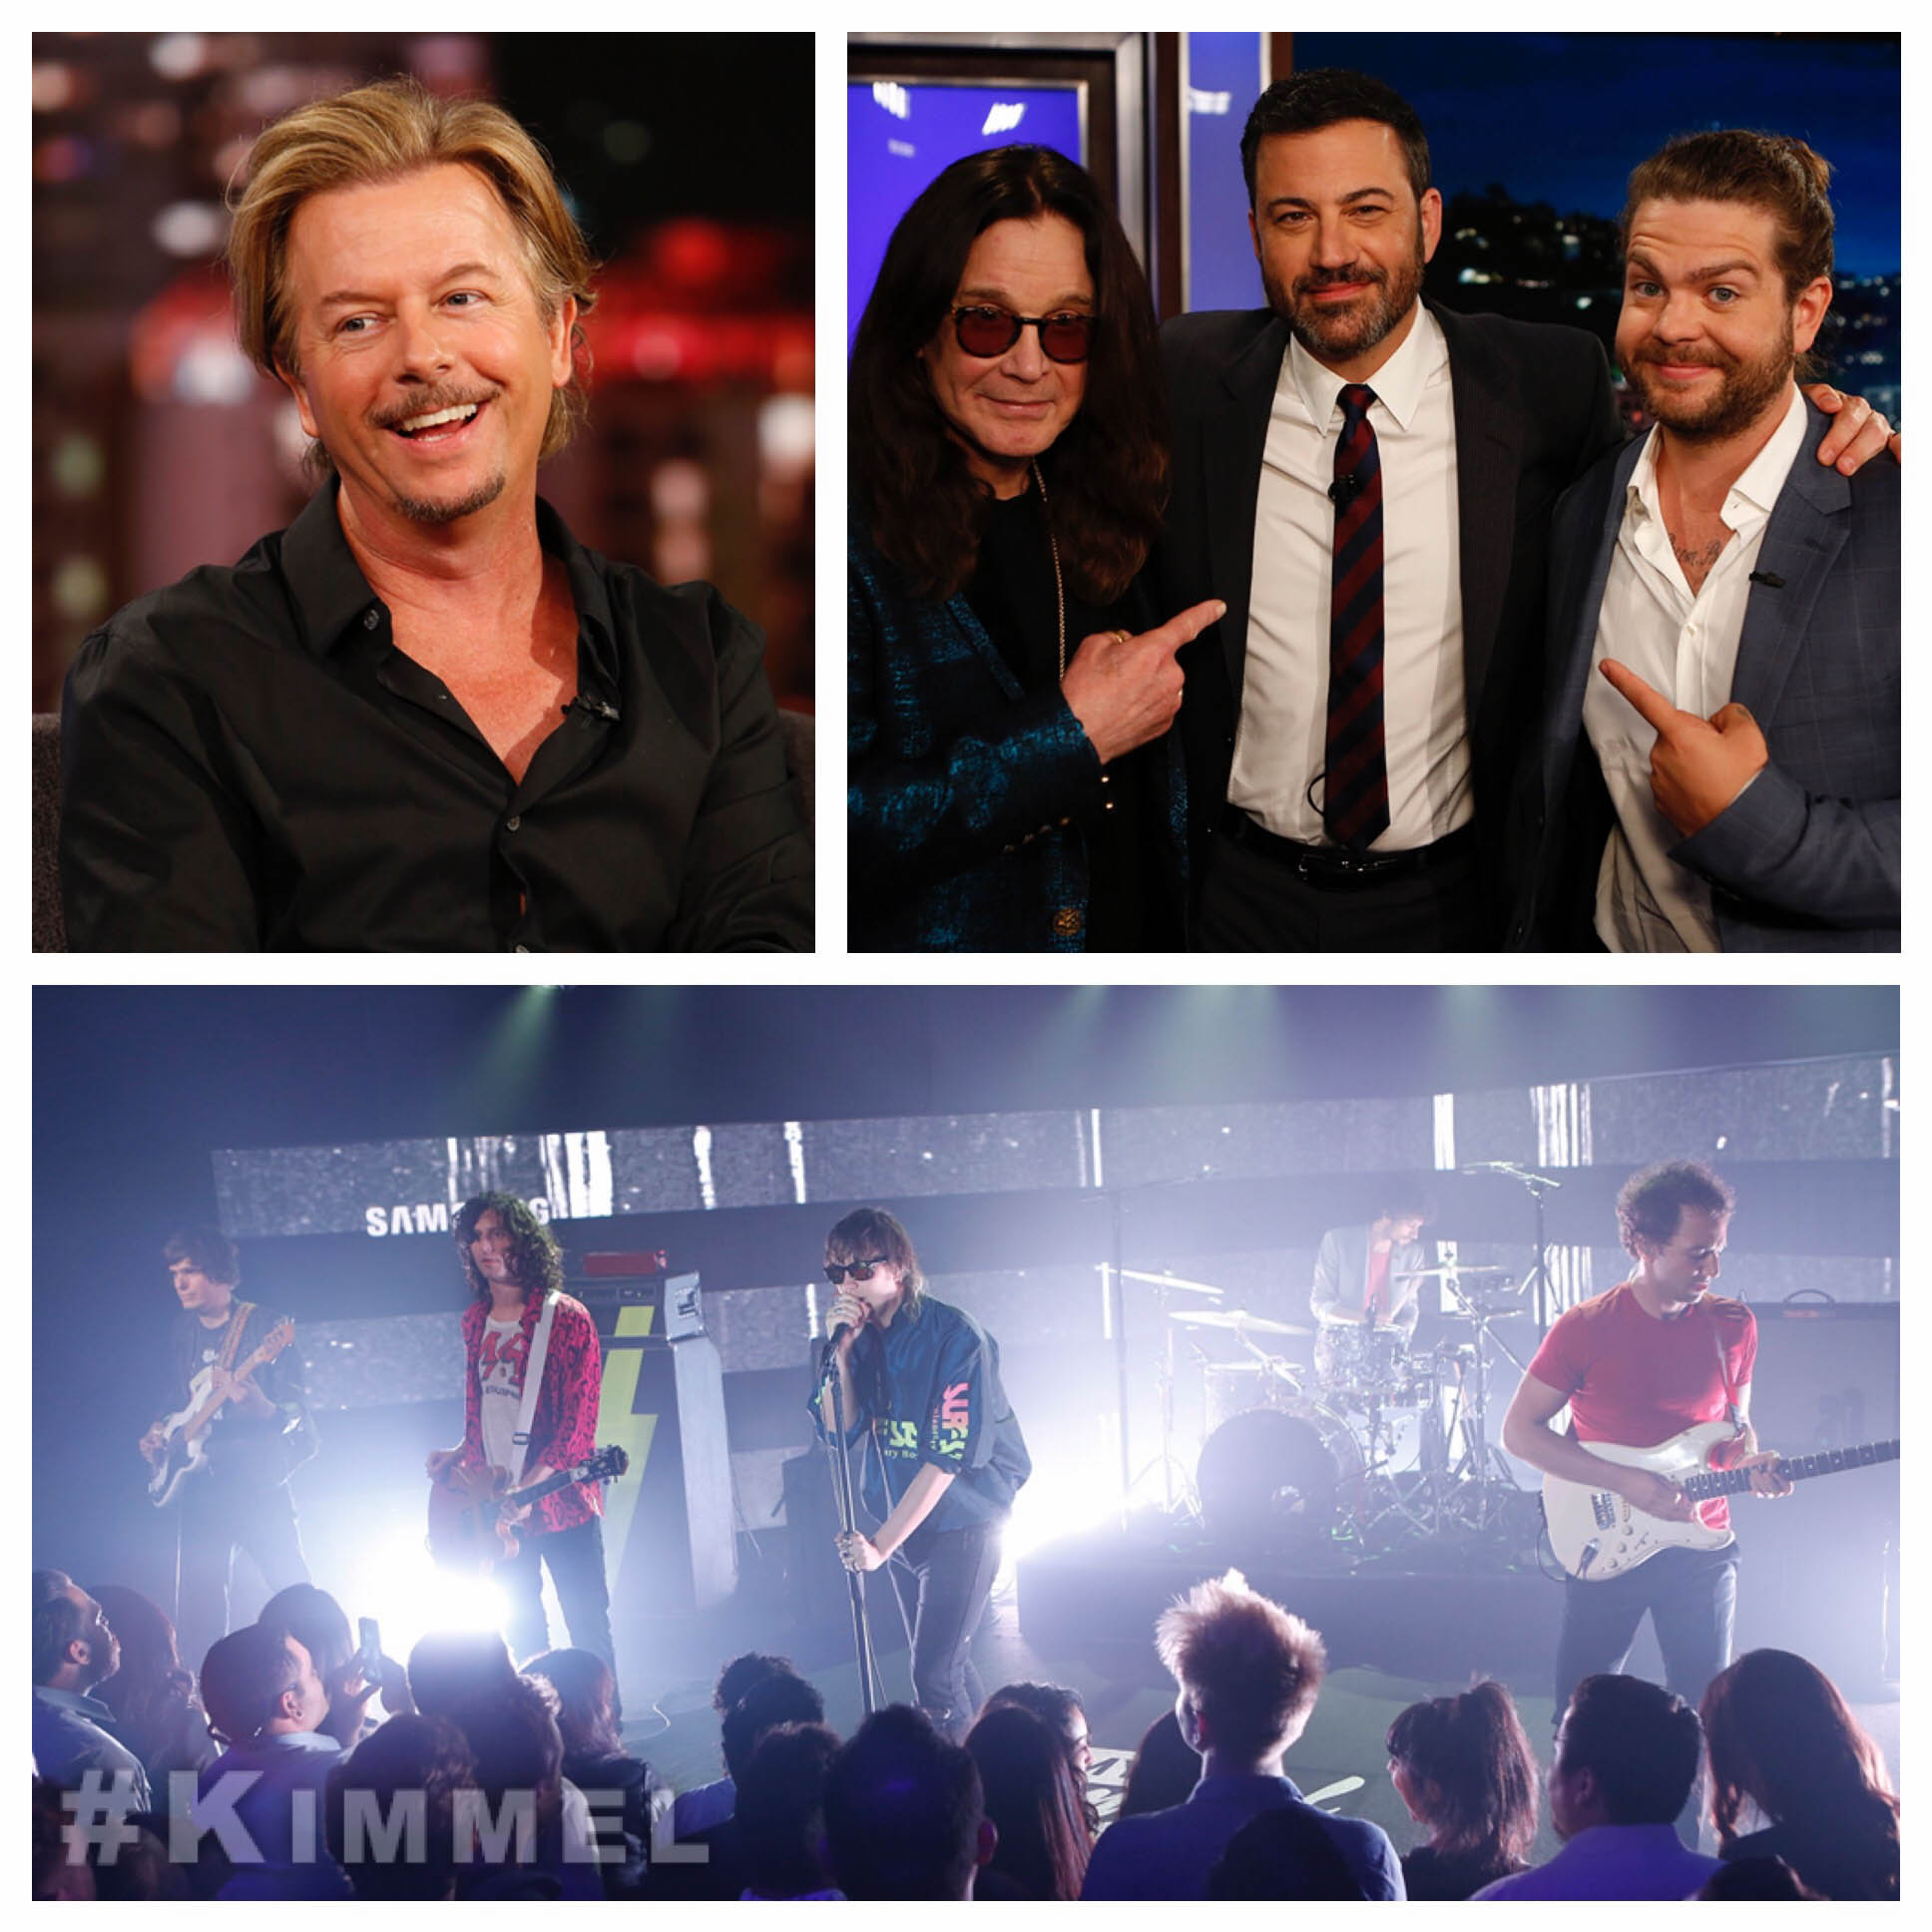 RT @JimmyKimmelLive: Tonight @DavidSpade @OzzyOsbourne @JackOsbourne @TheStrokes & a special #BoysTellAll episode of #TheBabyBachelorette h…